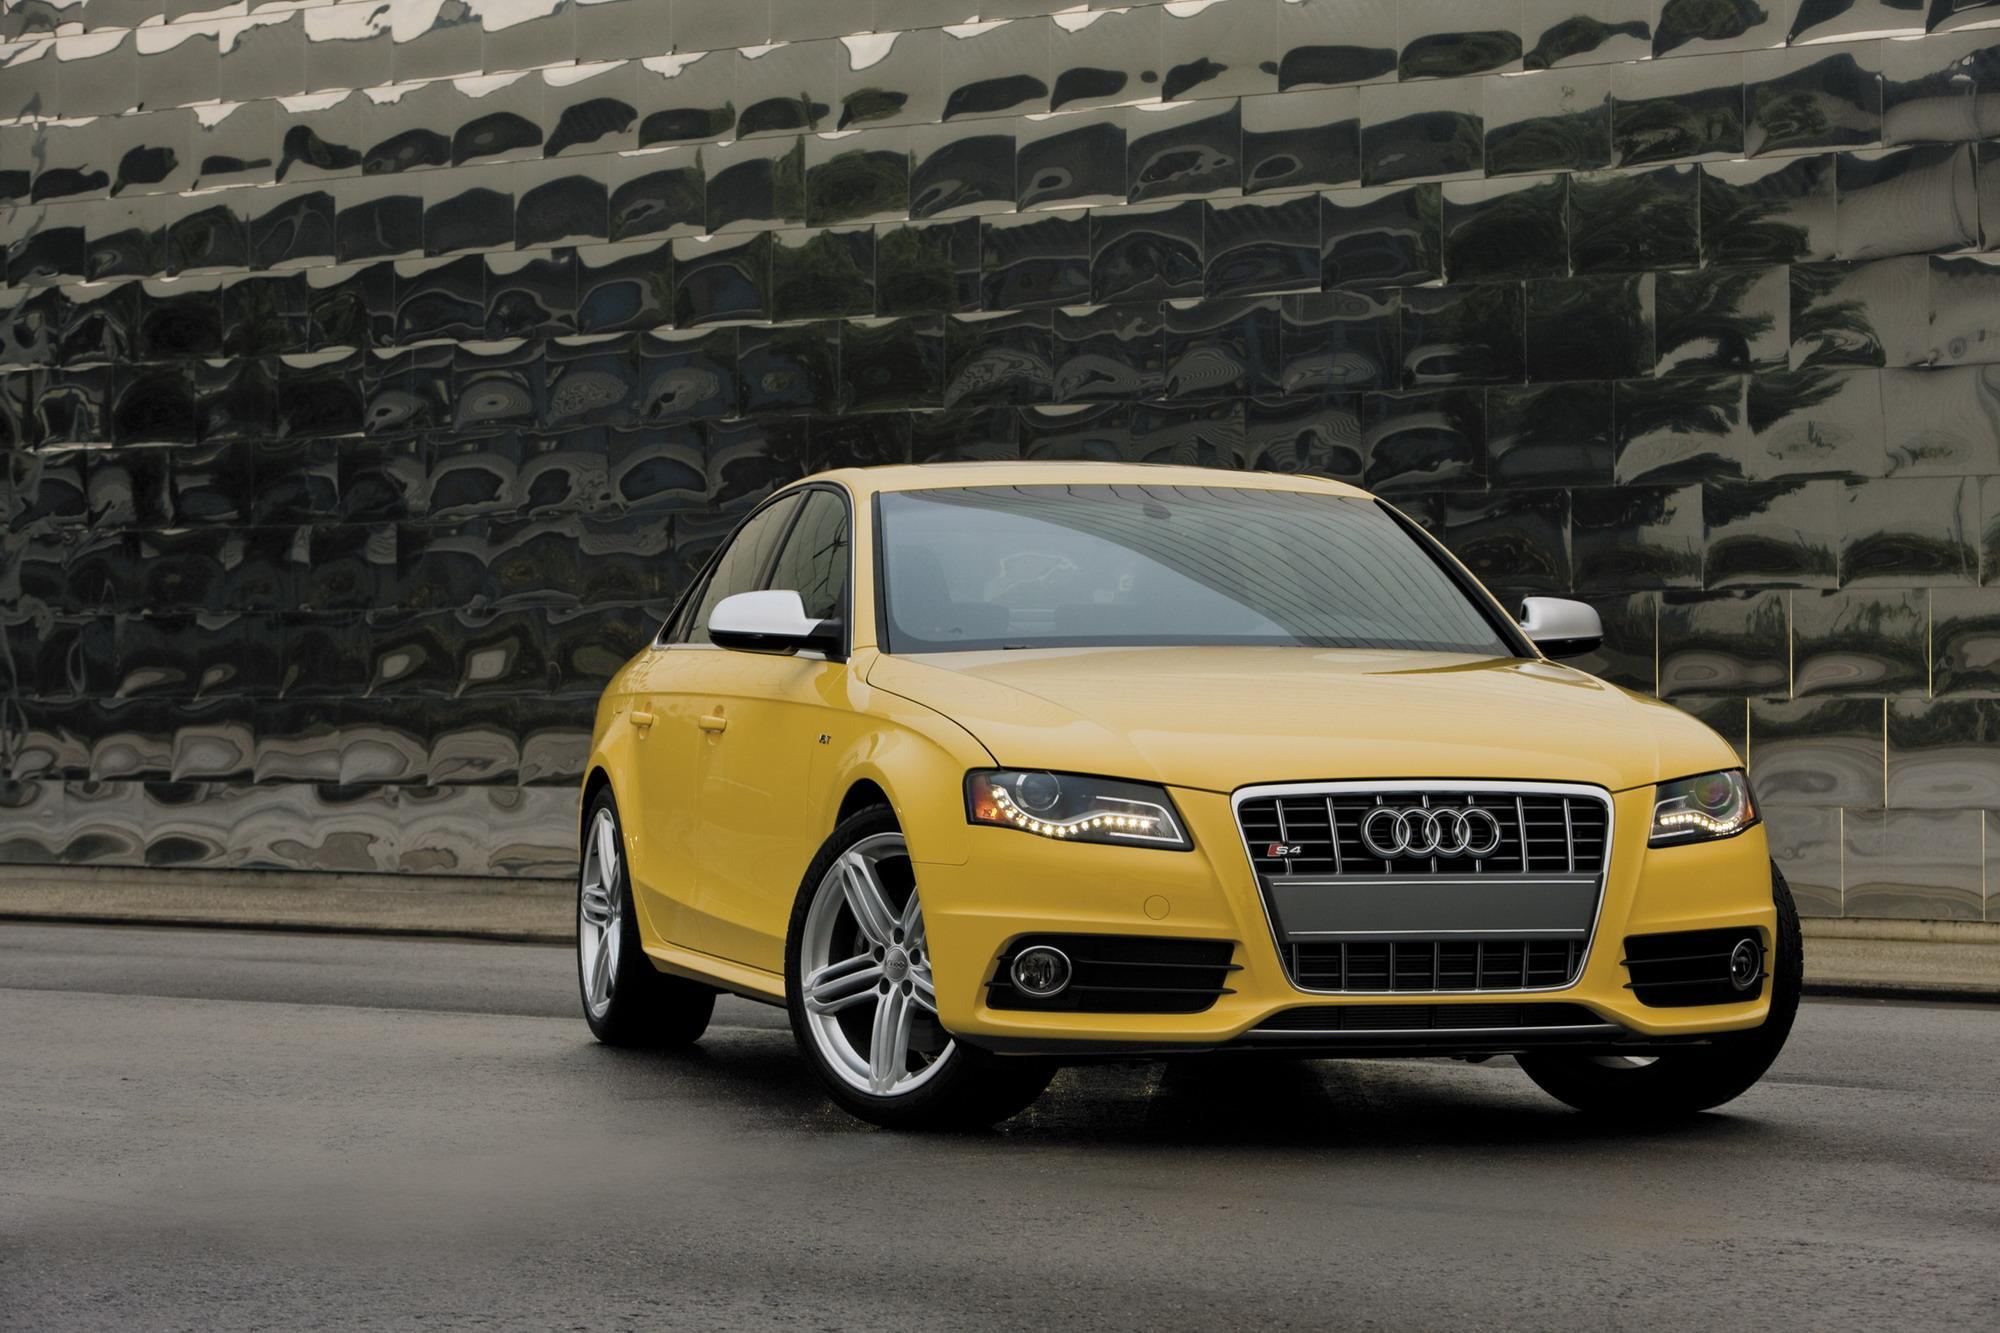 2010 audi s4 and a5 s5 cabriolet prices announced news top speed. Black Bedroom Furniture Sets. Home Design Ideas